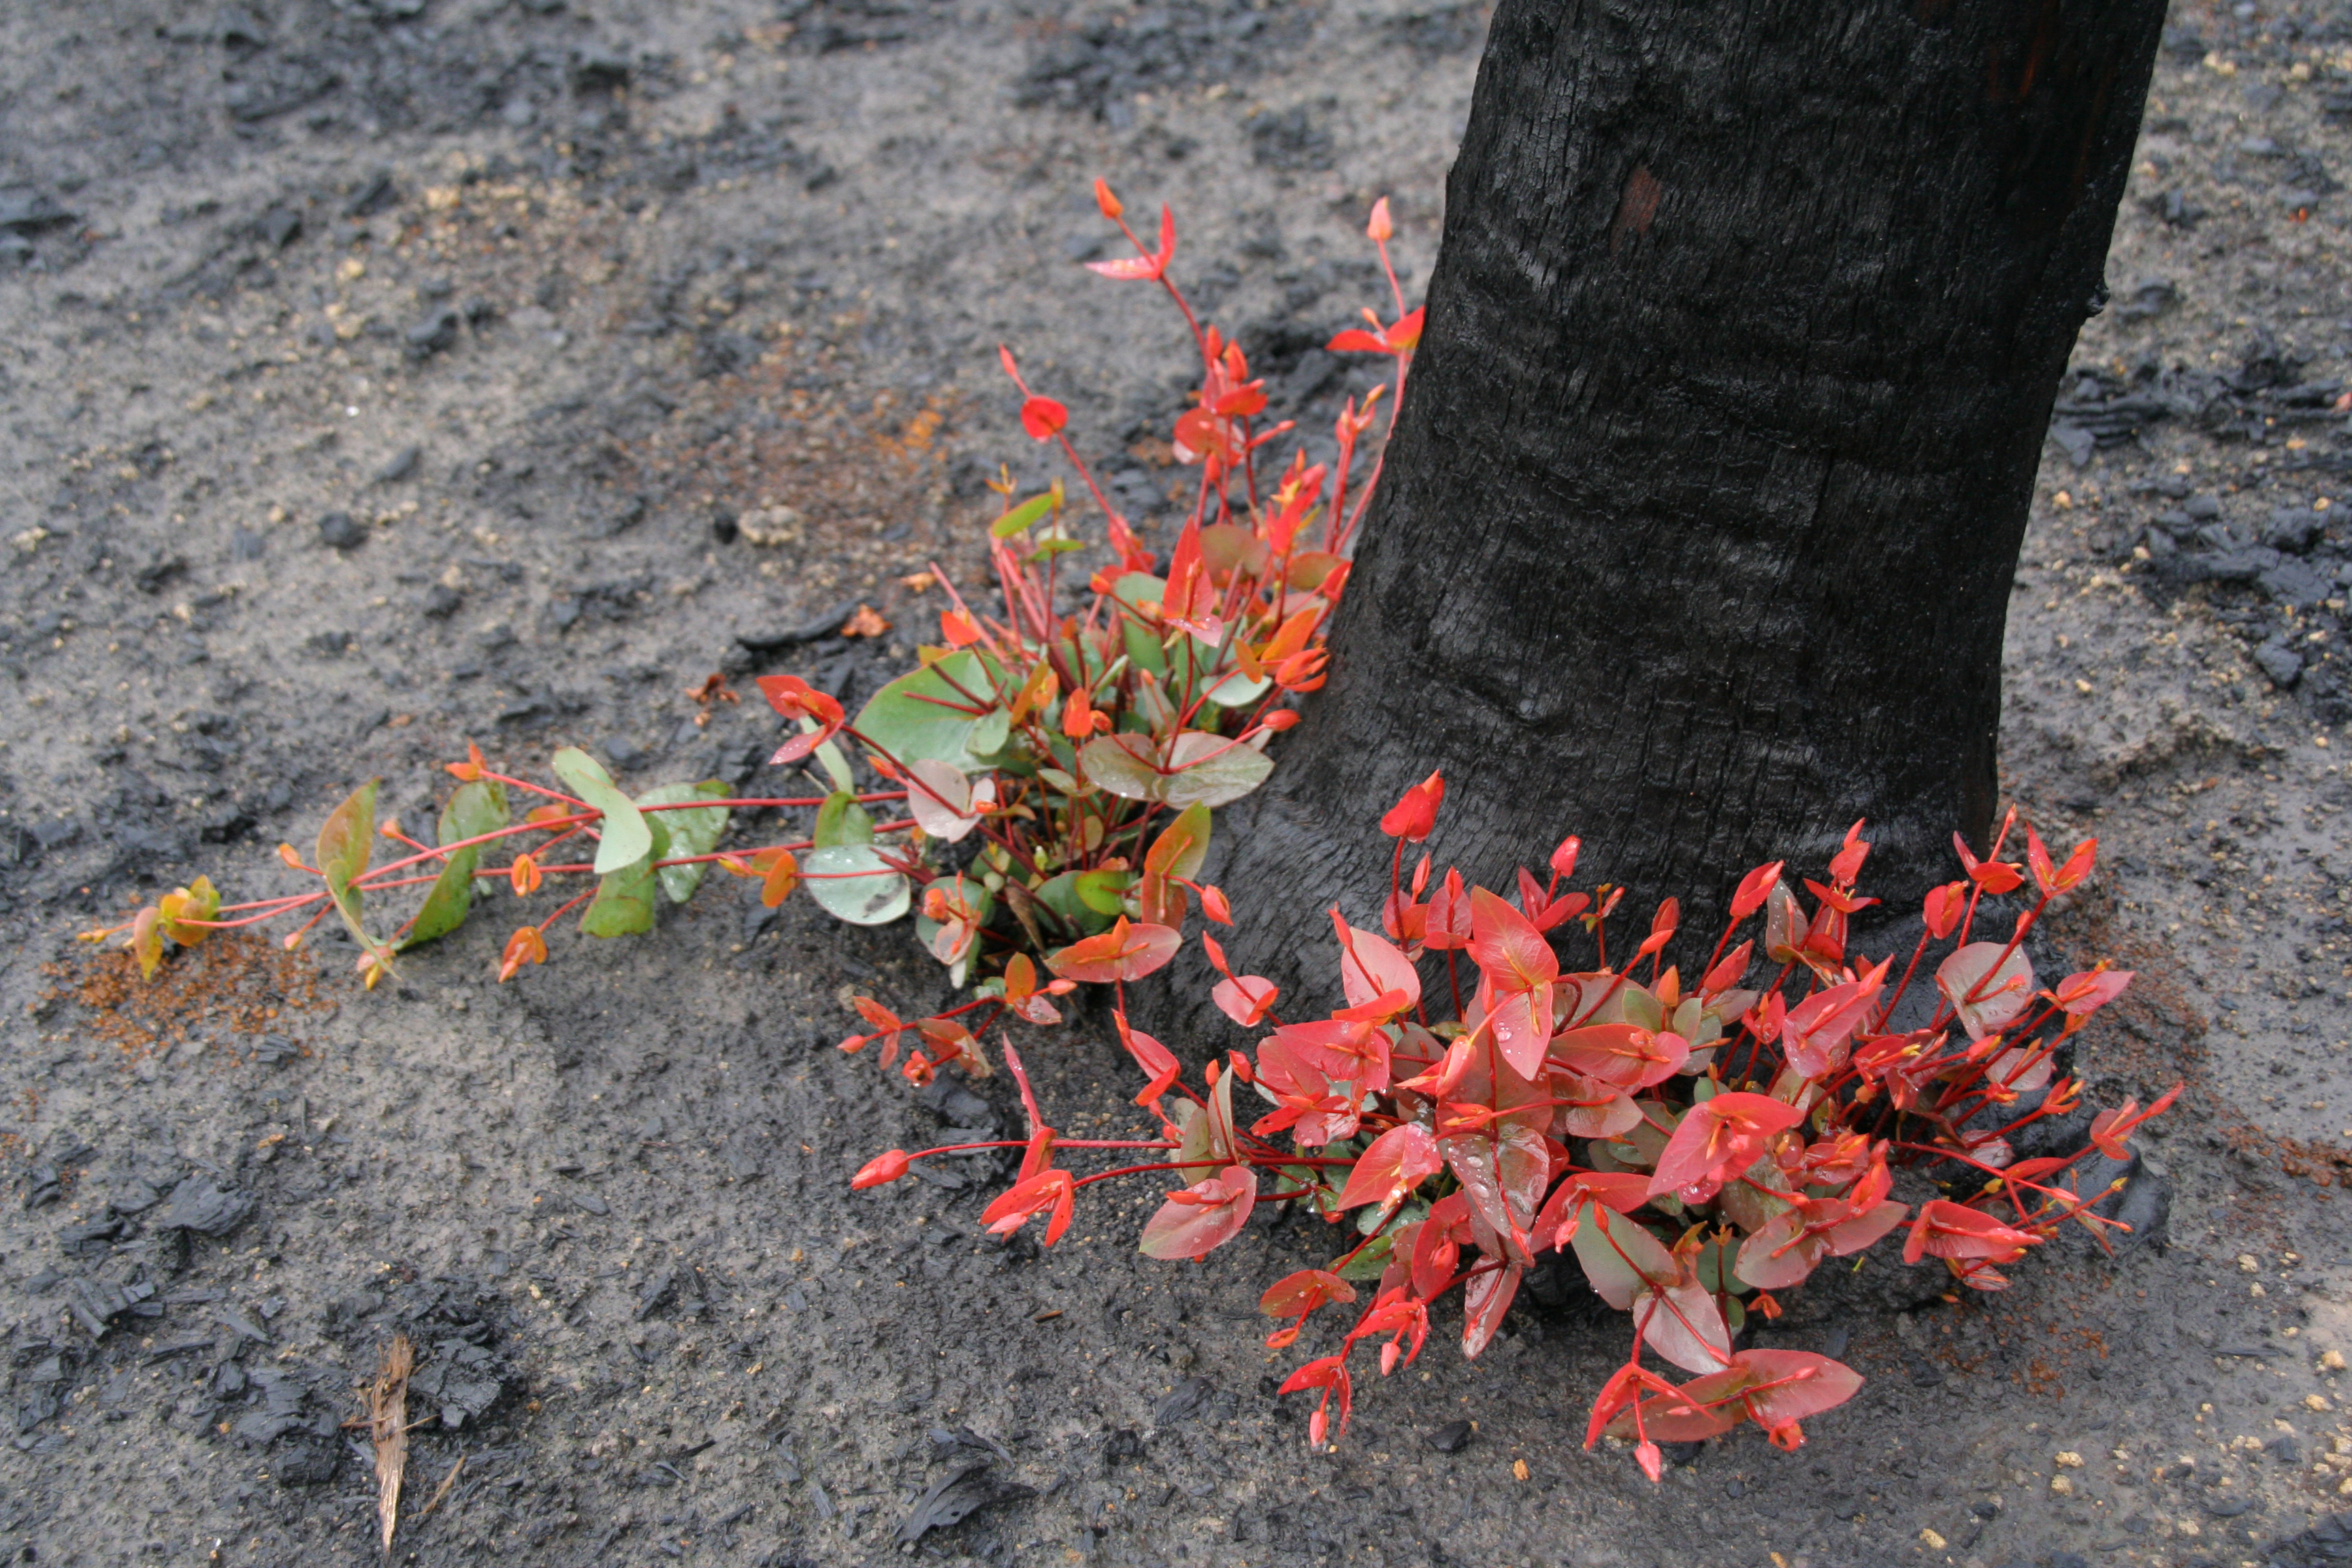 Epicormic regrowth from base of Eucalyptus tree, four months after Black Saturday bushfires, Strathewen, Victoria. Image: CSIRO